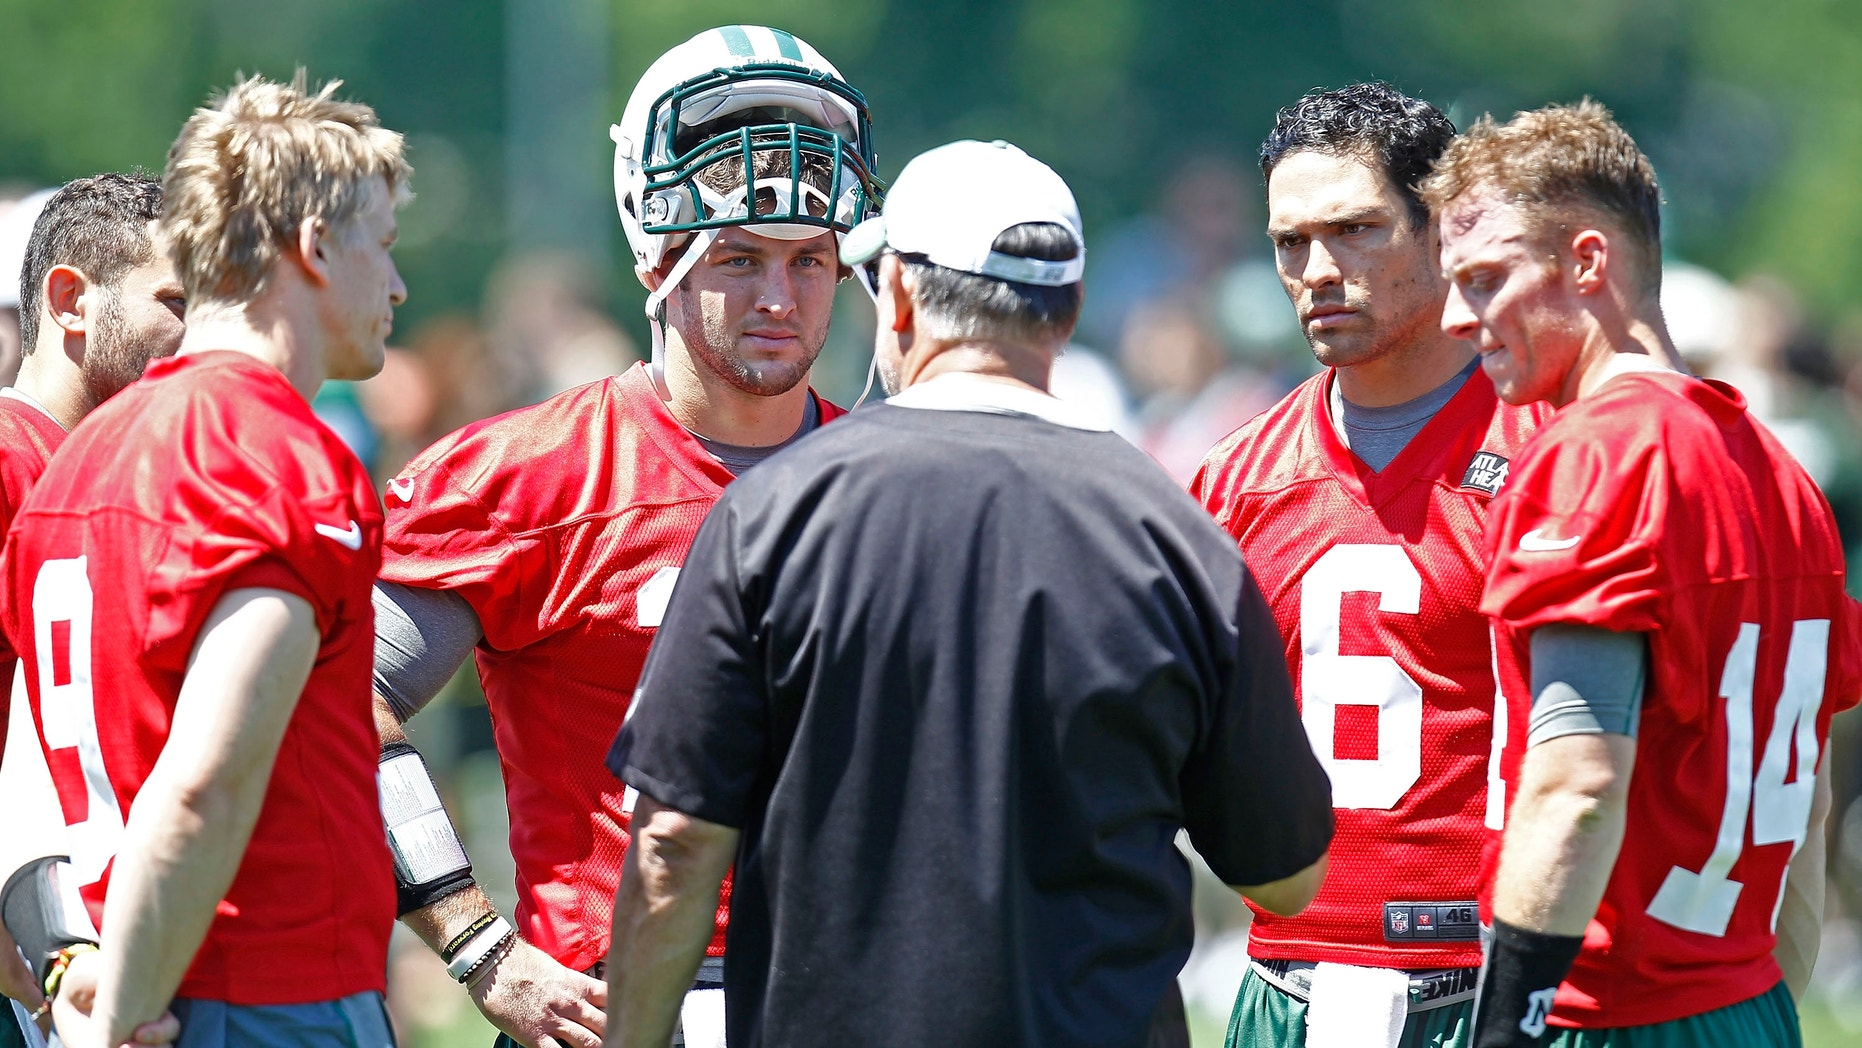 at an organized team activity at the New York Jets practice facility on May 24, 2012 in Florham Park, New Jersey.